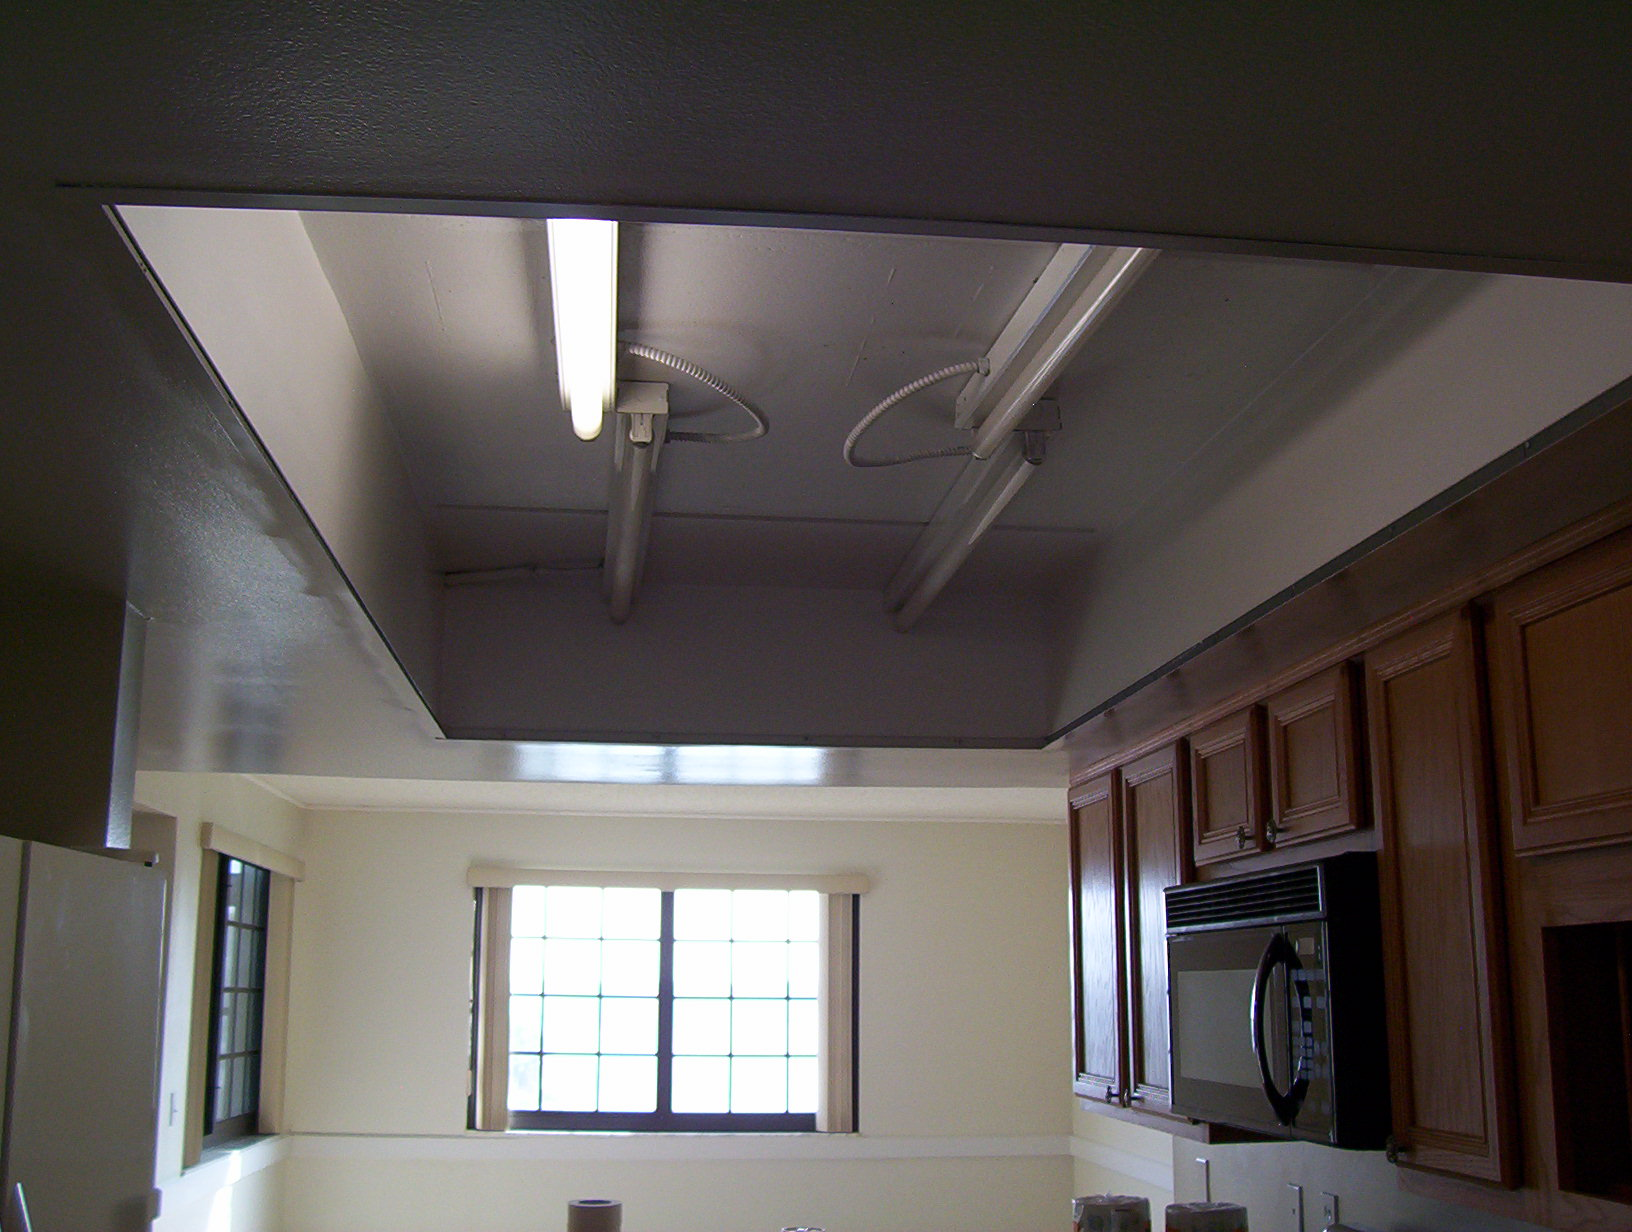 Cocoa Beach condo kitchen grid ceiling removed